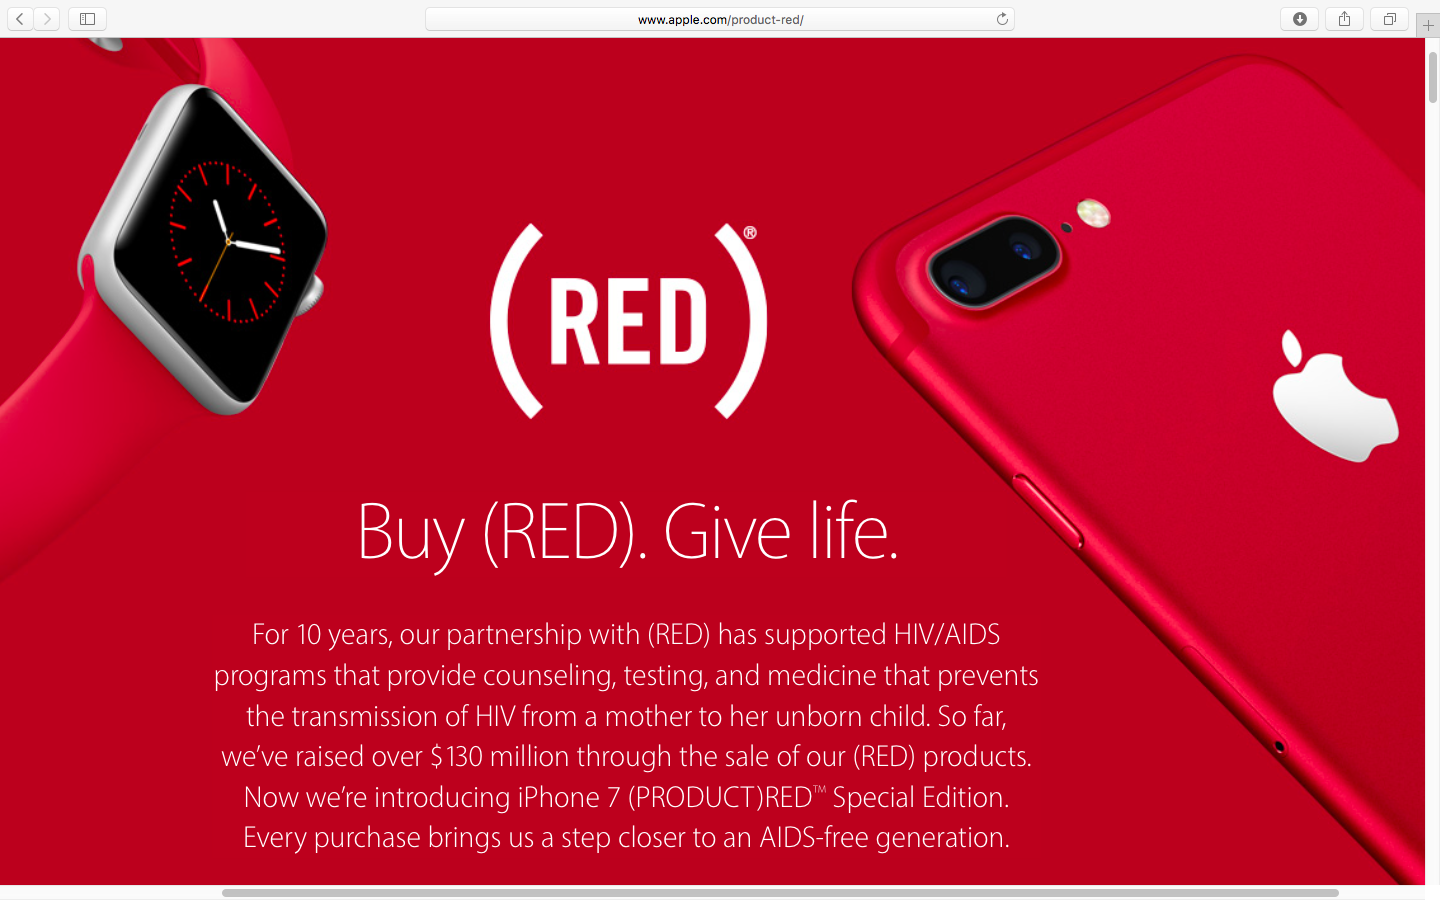 iphone apple contributions plus topped million special edition se march announcements productred web screenshot apples